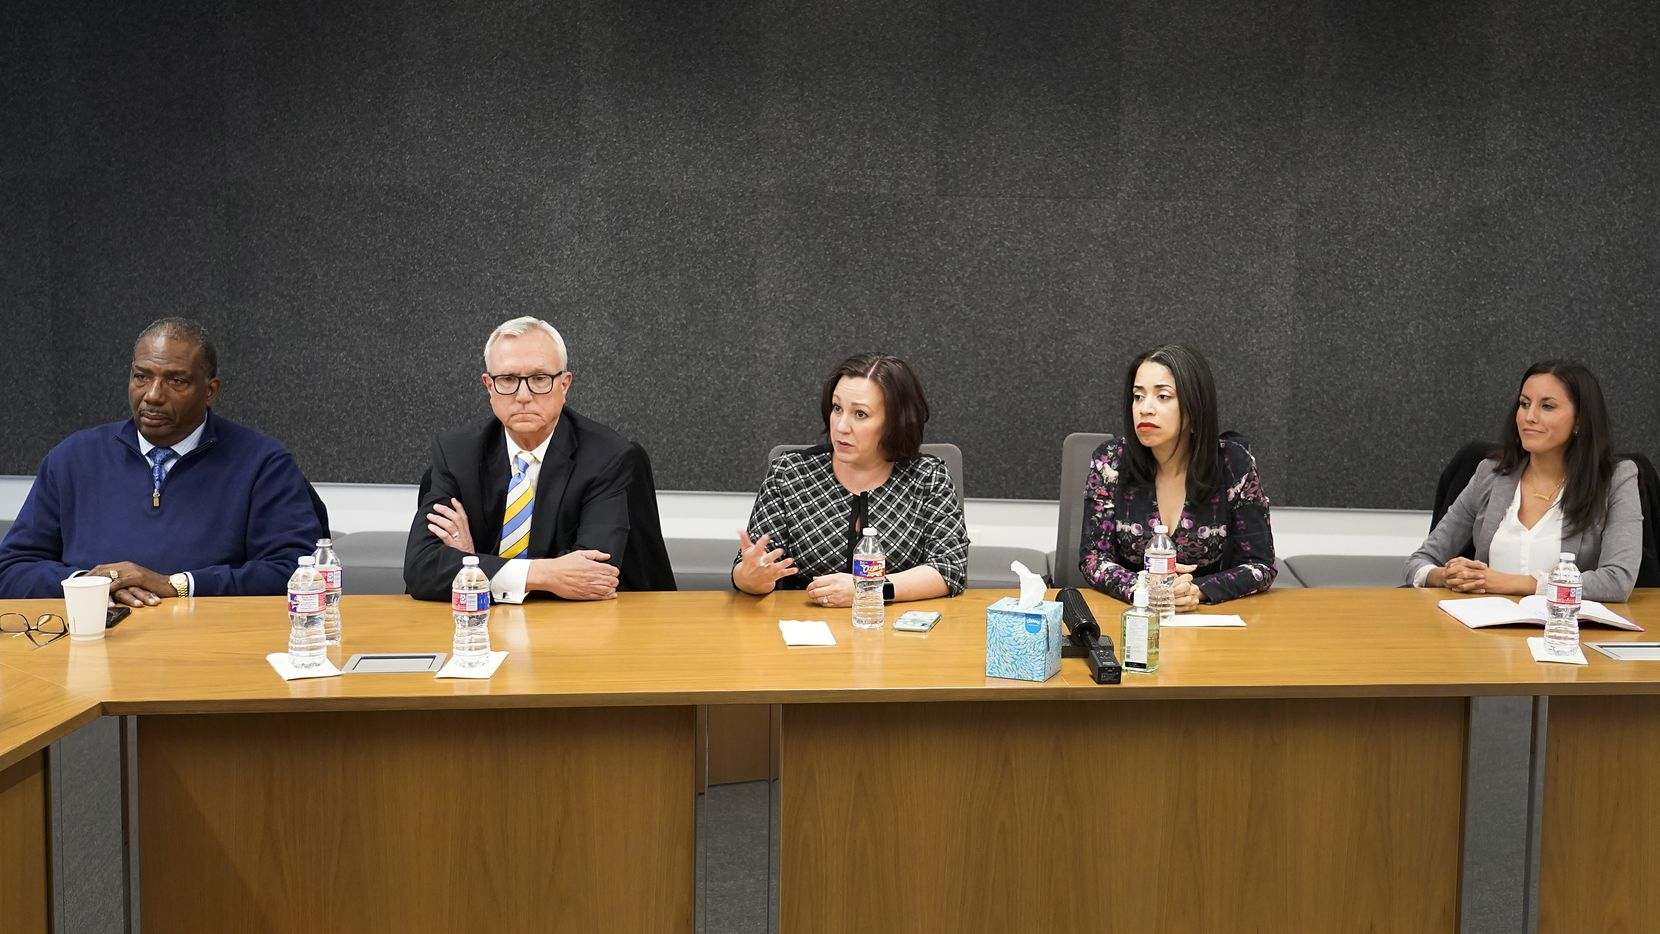 (Desde la izq.) Los candidatos al senado federal Royce West, Chris Bell, MJ Hegar, Amanda Edwards y Cristina Tzintzún Ramírez participan de un panel con la junta editorial de The Dallas Morning News